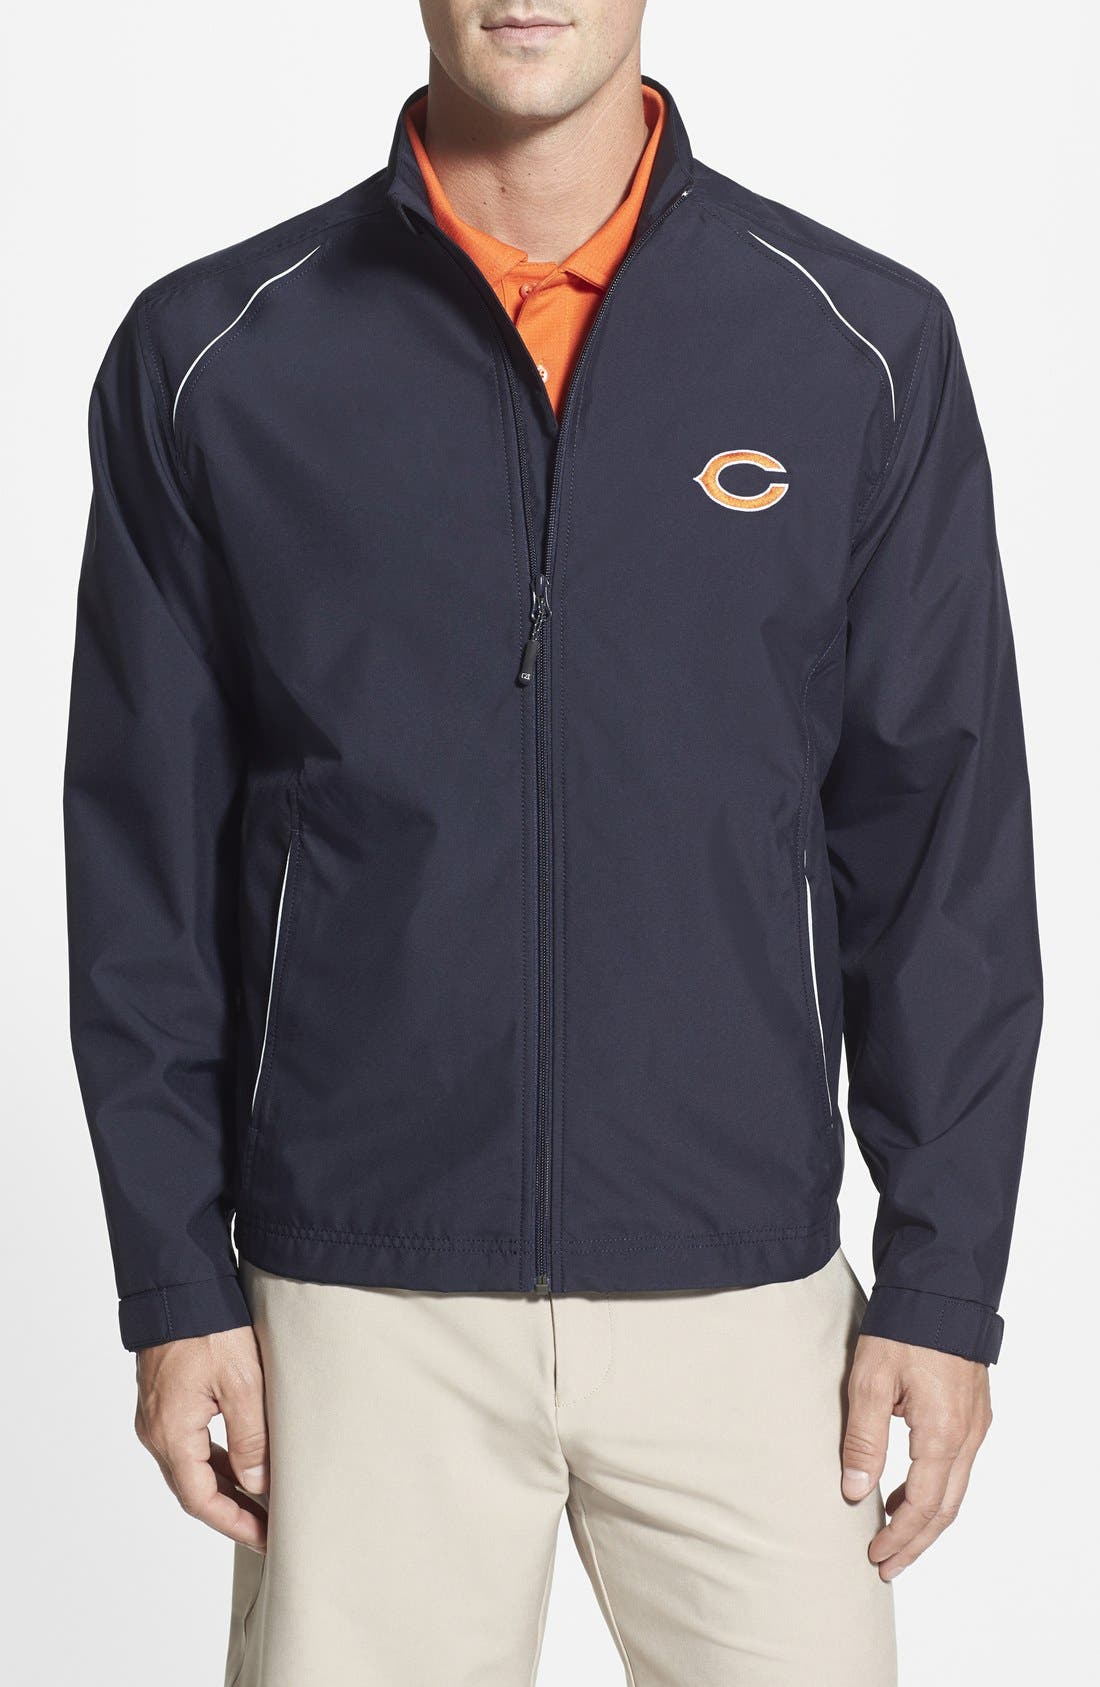 Main Image - Cutter & Buck 'Chicago Bears - Beacon' WeatherTec Wind & Water Resistant Jacket